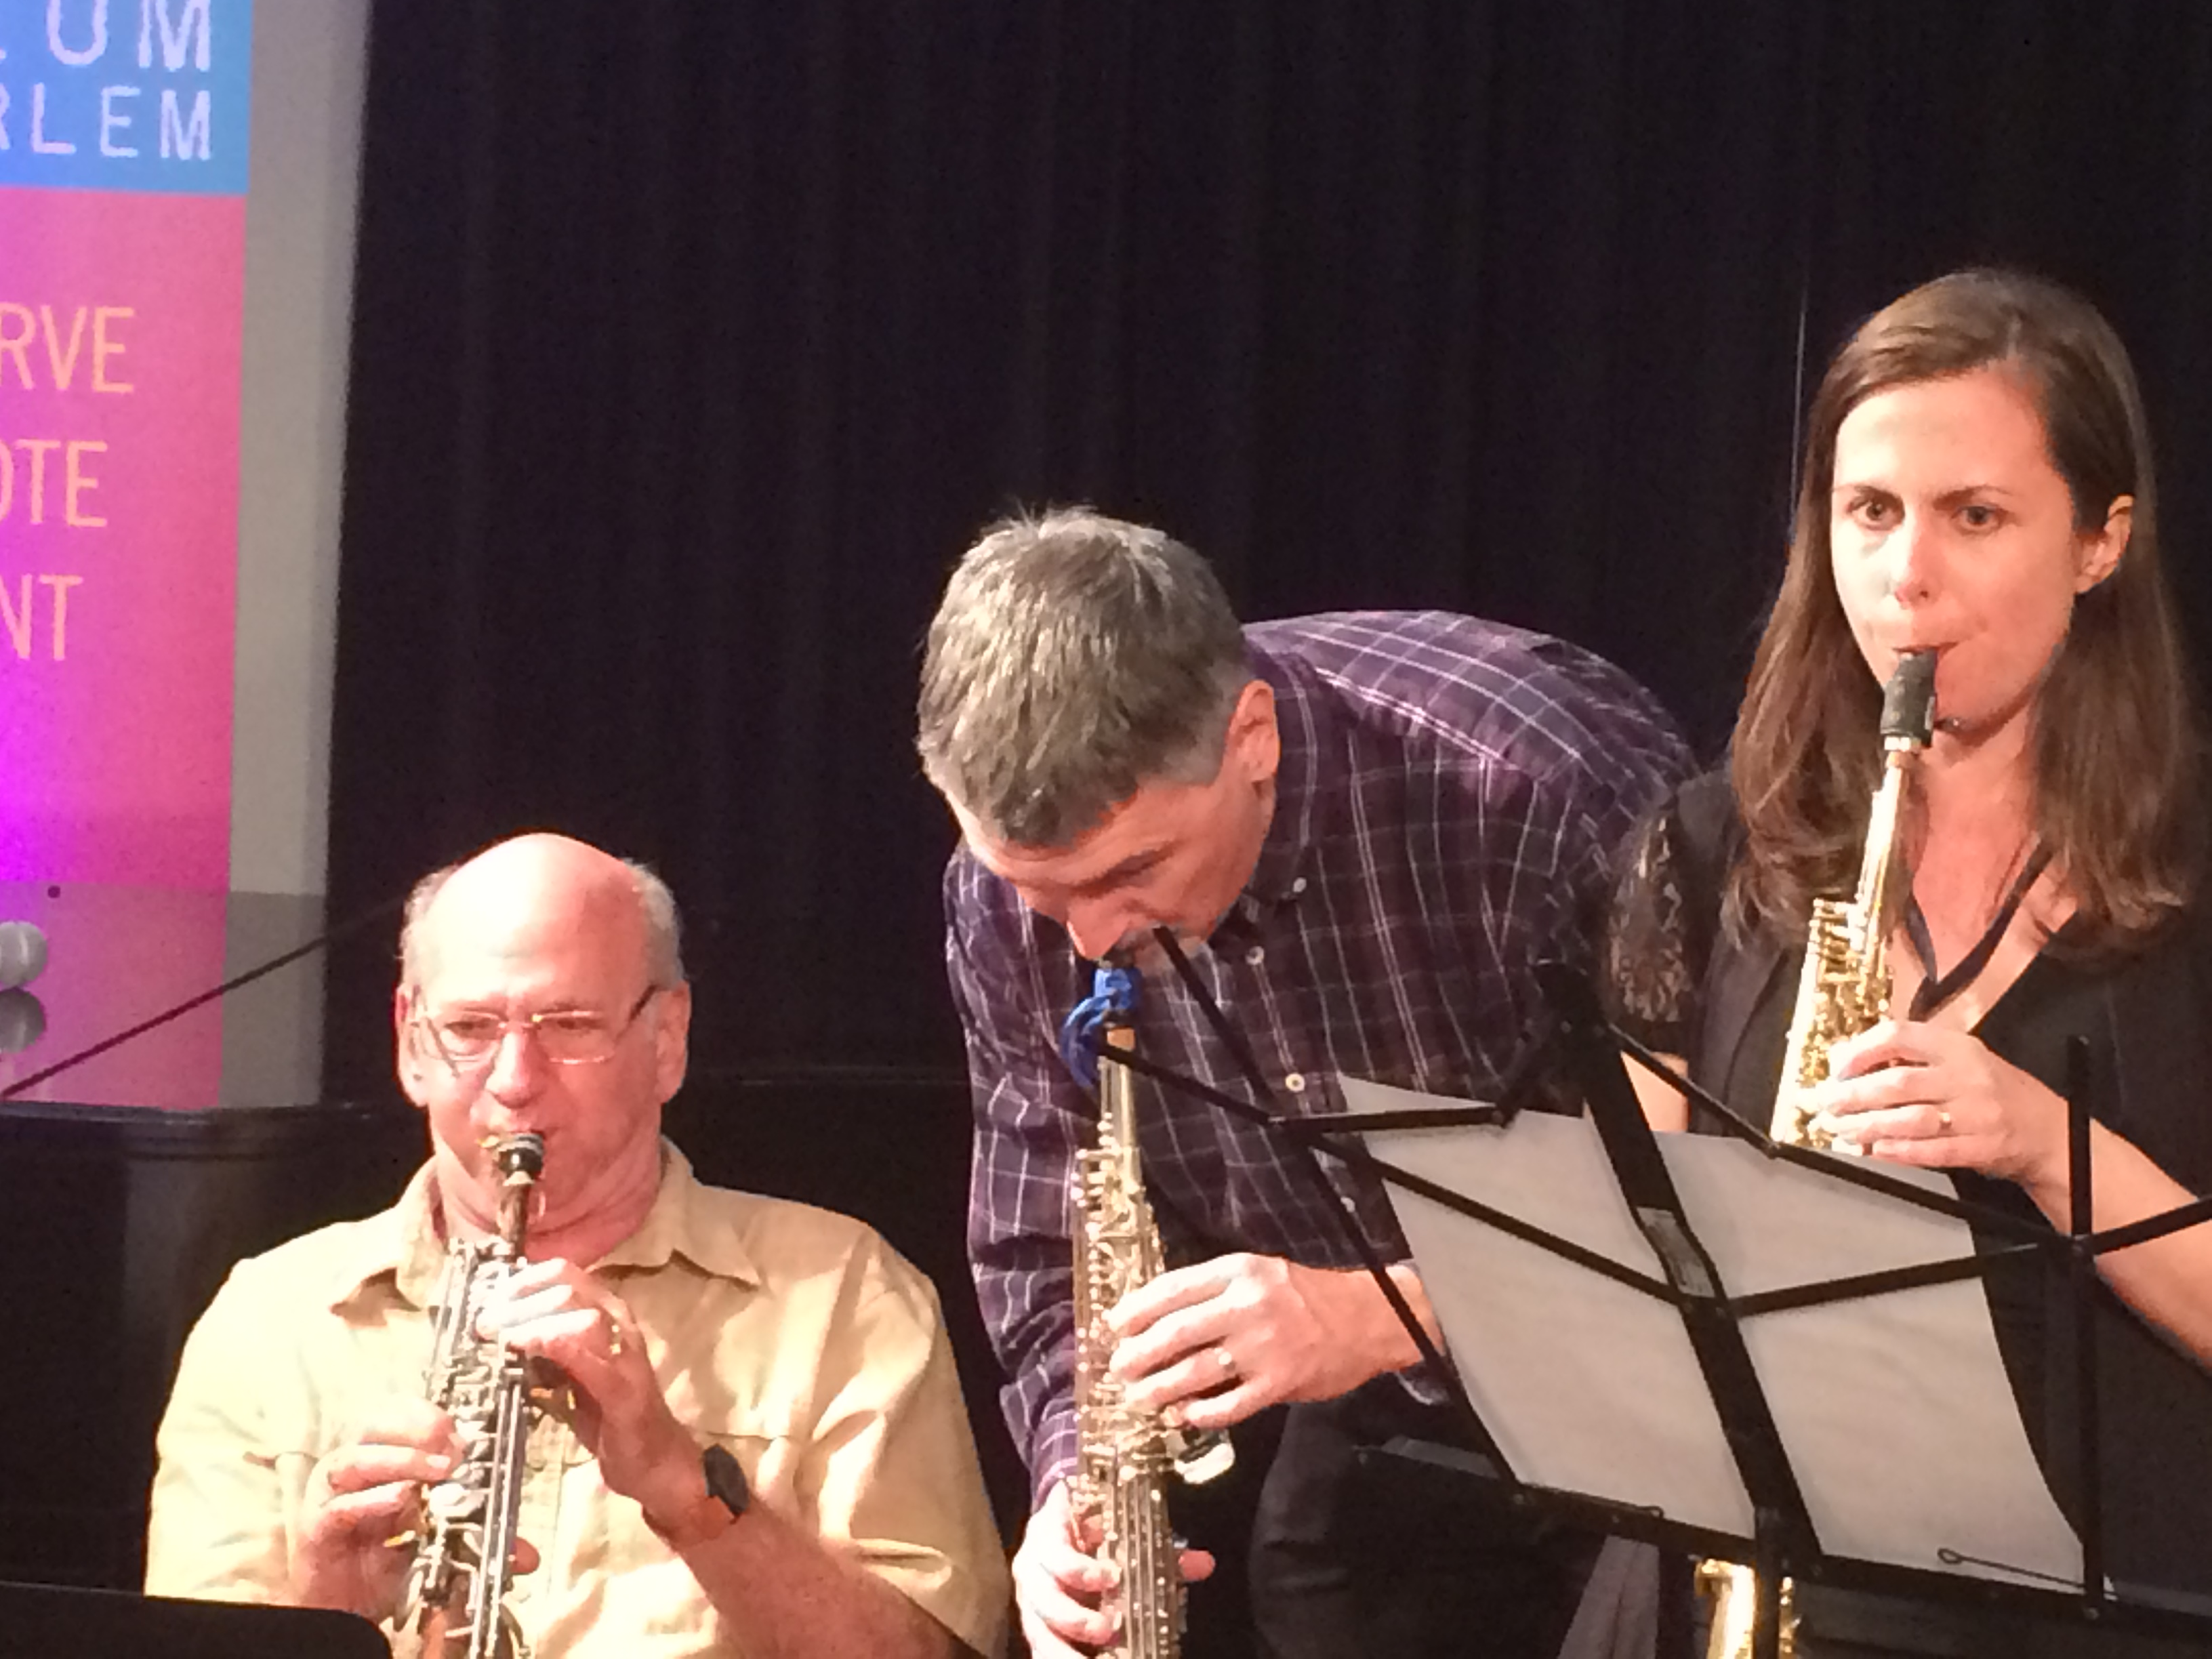 With Dave Liebman and Kayla Milmine